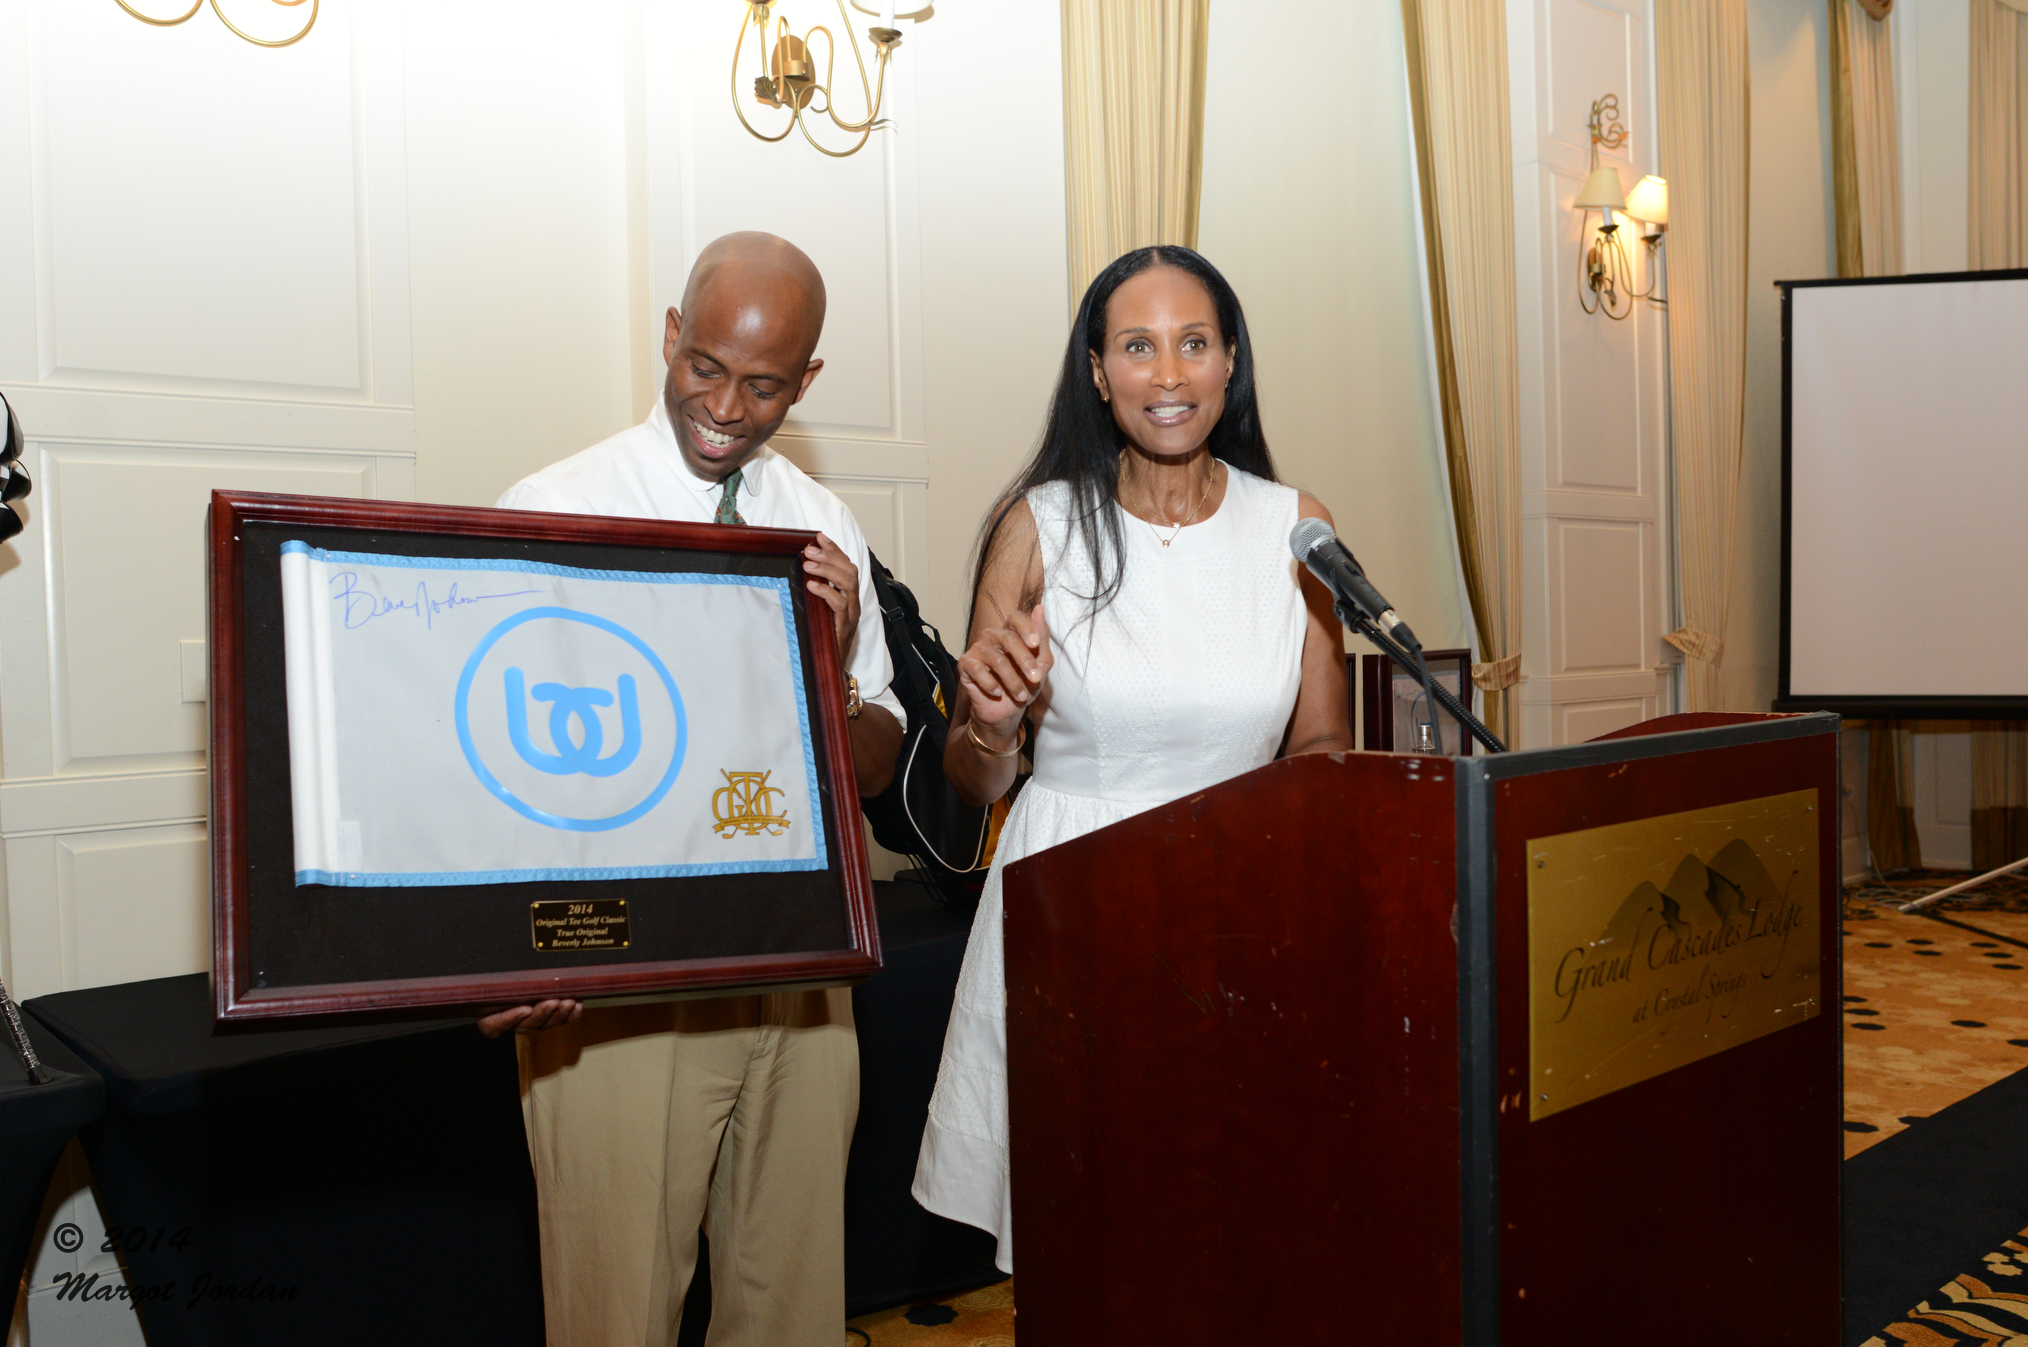 Beverly Johnson accepts award from Wendell J. Haskins/Courtesy: Margot Jordan